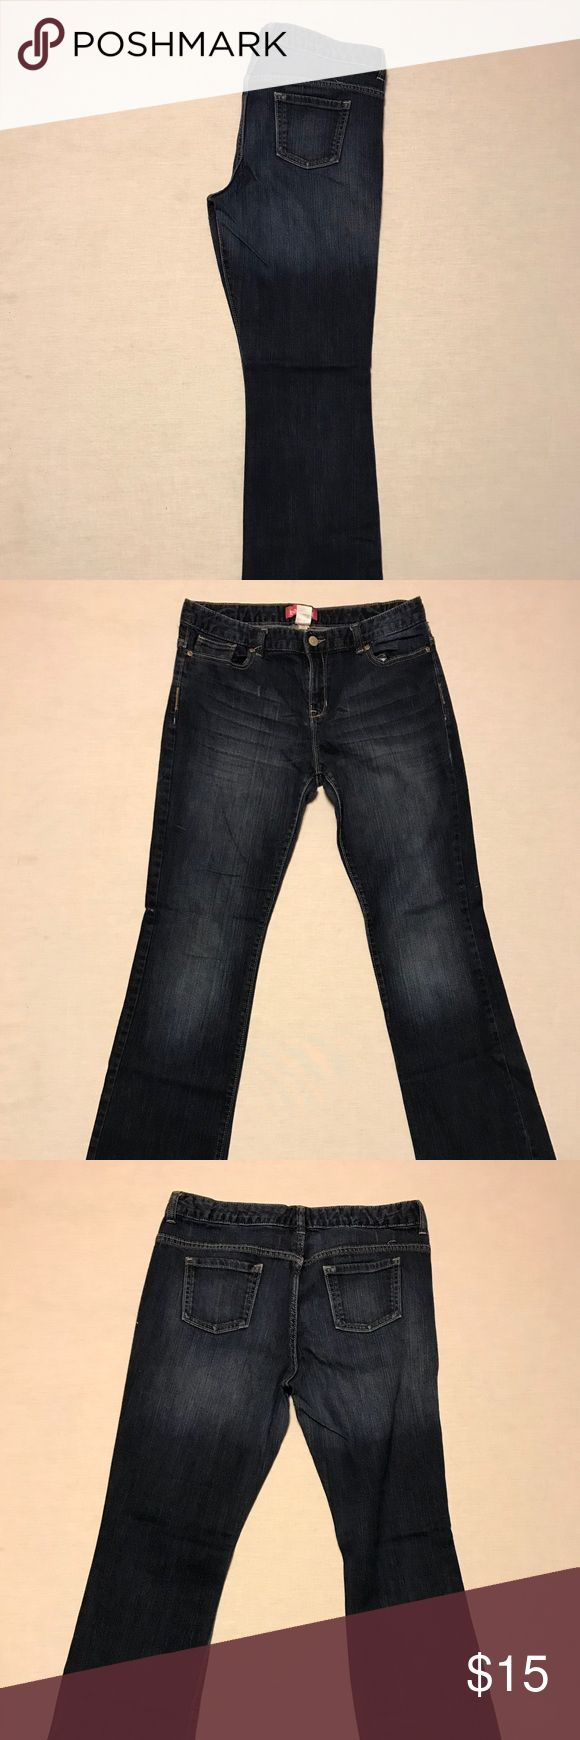 """Old Navy lowrise stretch bootcut size 16 Up for sale today is a cute pair of Old Navy low rise stretch boot cut jeans. Their a size 16 with a 30"""" inseam. They have a 32"""" waist and 38"""" hips. They have front button and zipper and 5 front pockets and two back pockets. There is a small area at the hem that shows a bit of wear. They've been checked from stains, rips and wear. Old Navy Jeans Boot Cut"""